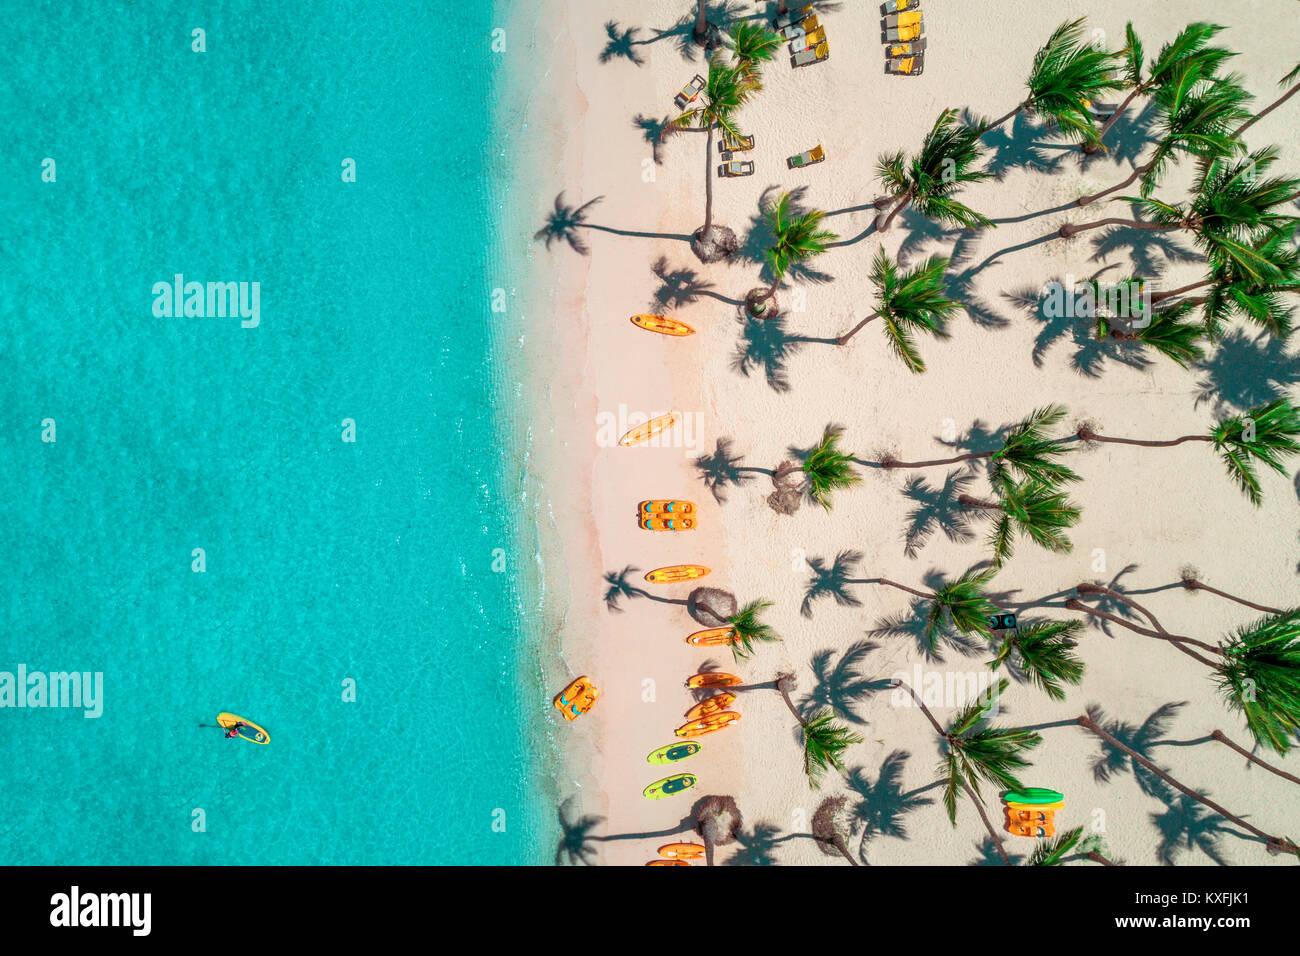 Aerial view of caribbean resort, Bavaro, Dominican Republic - Stock Image